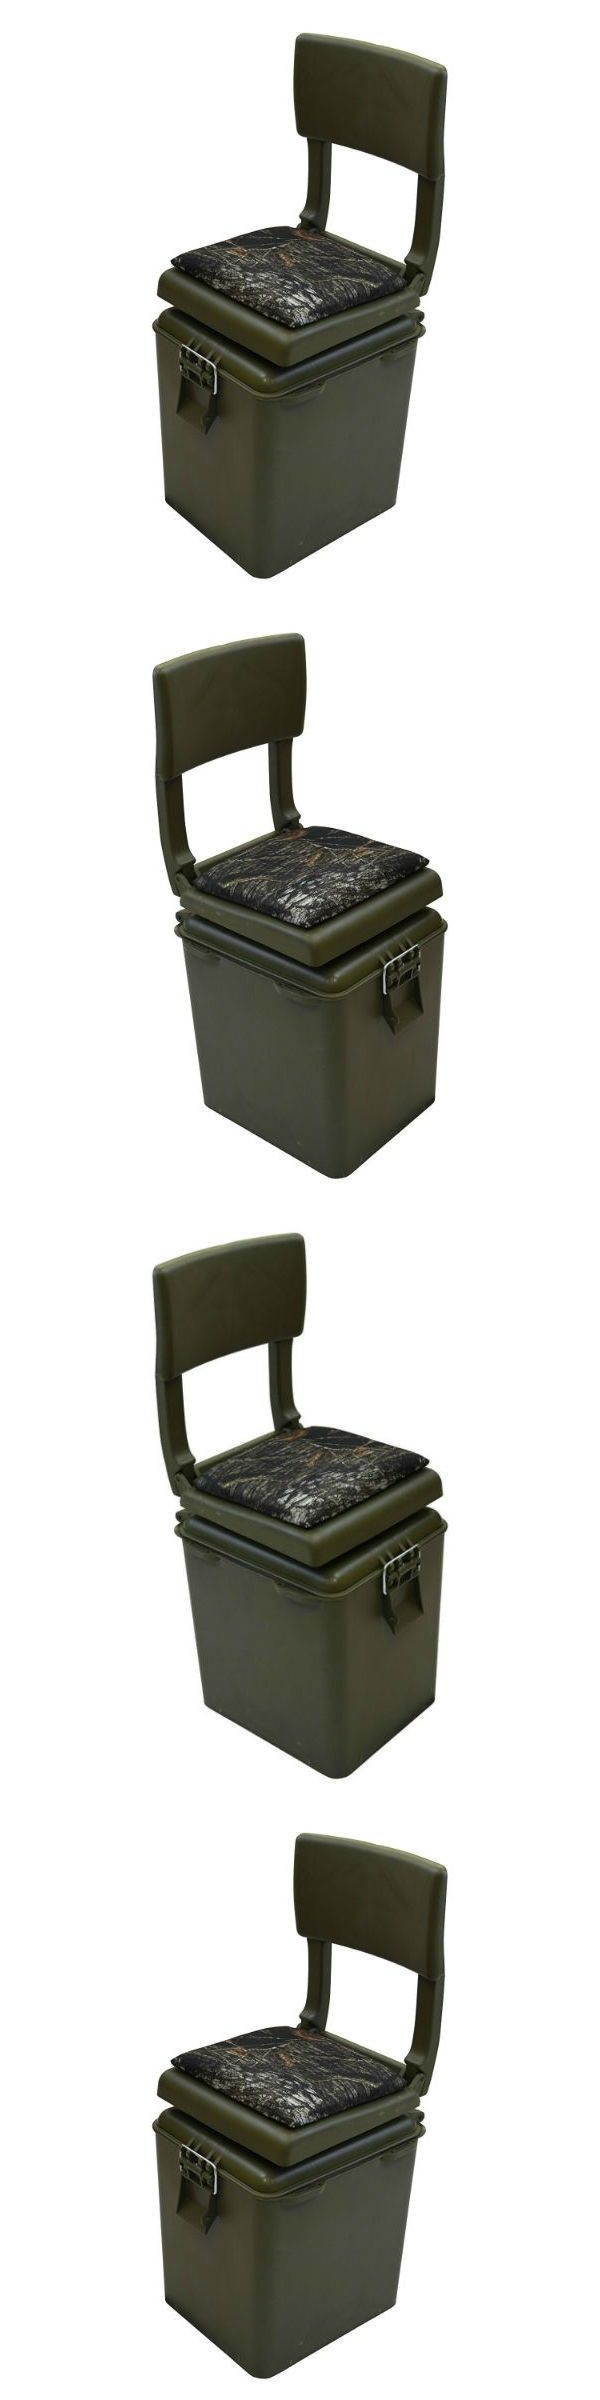 Seats and Chairs 52507 Hunting Blind Chair Swivel Fishing